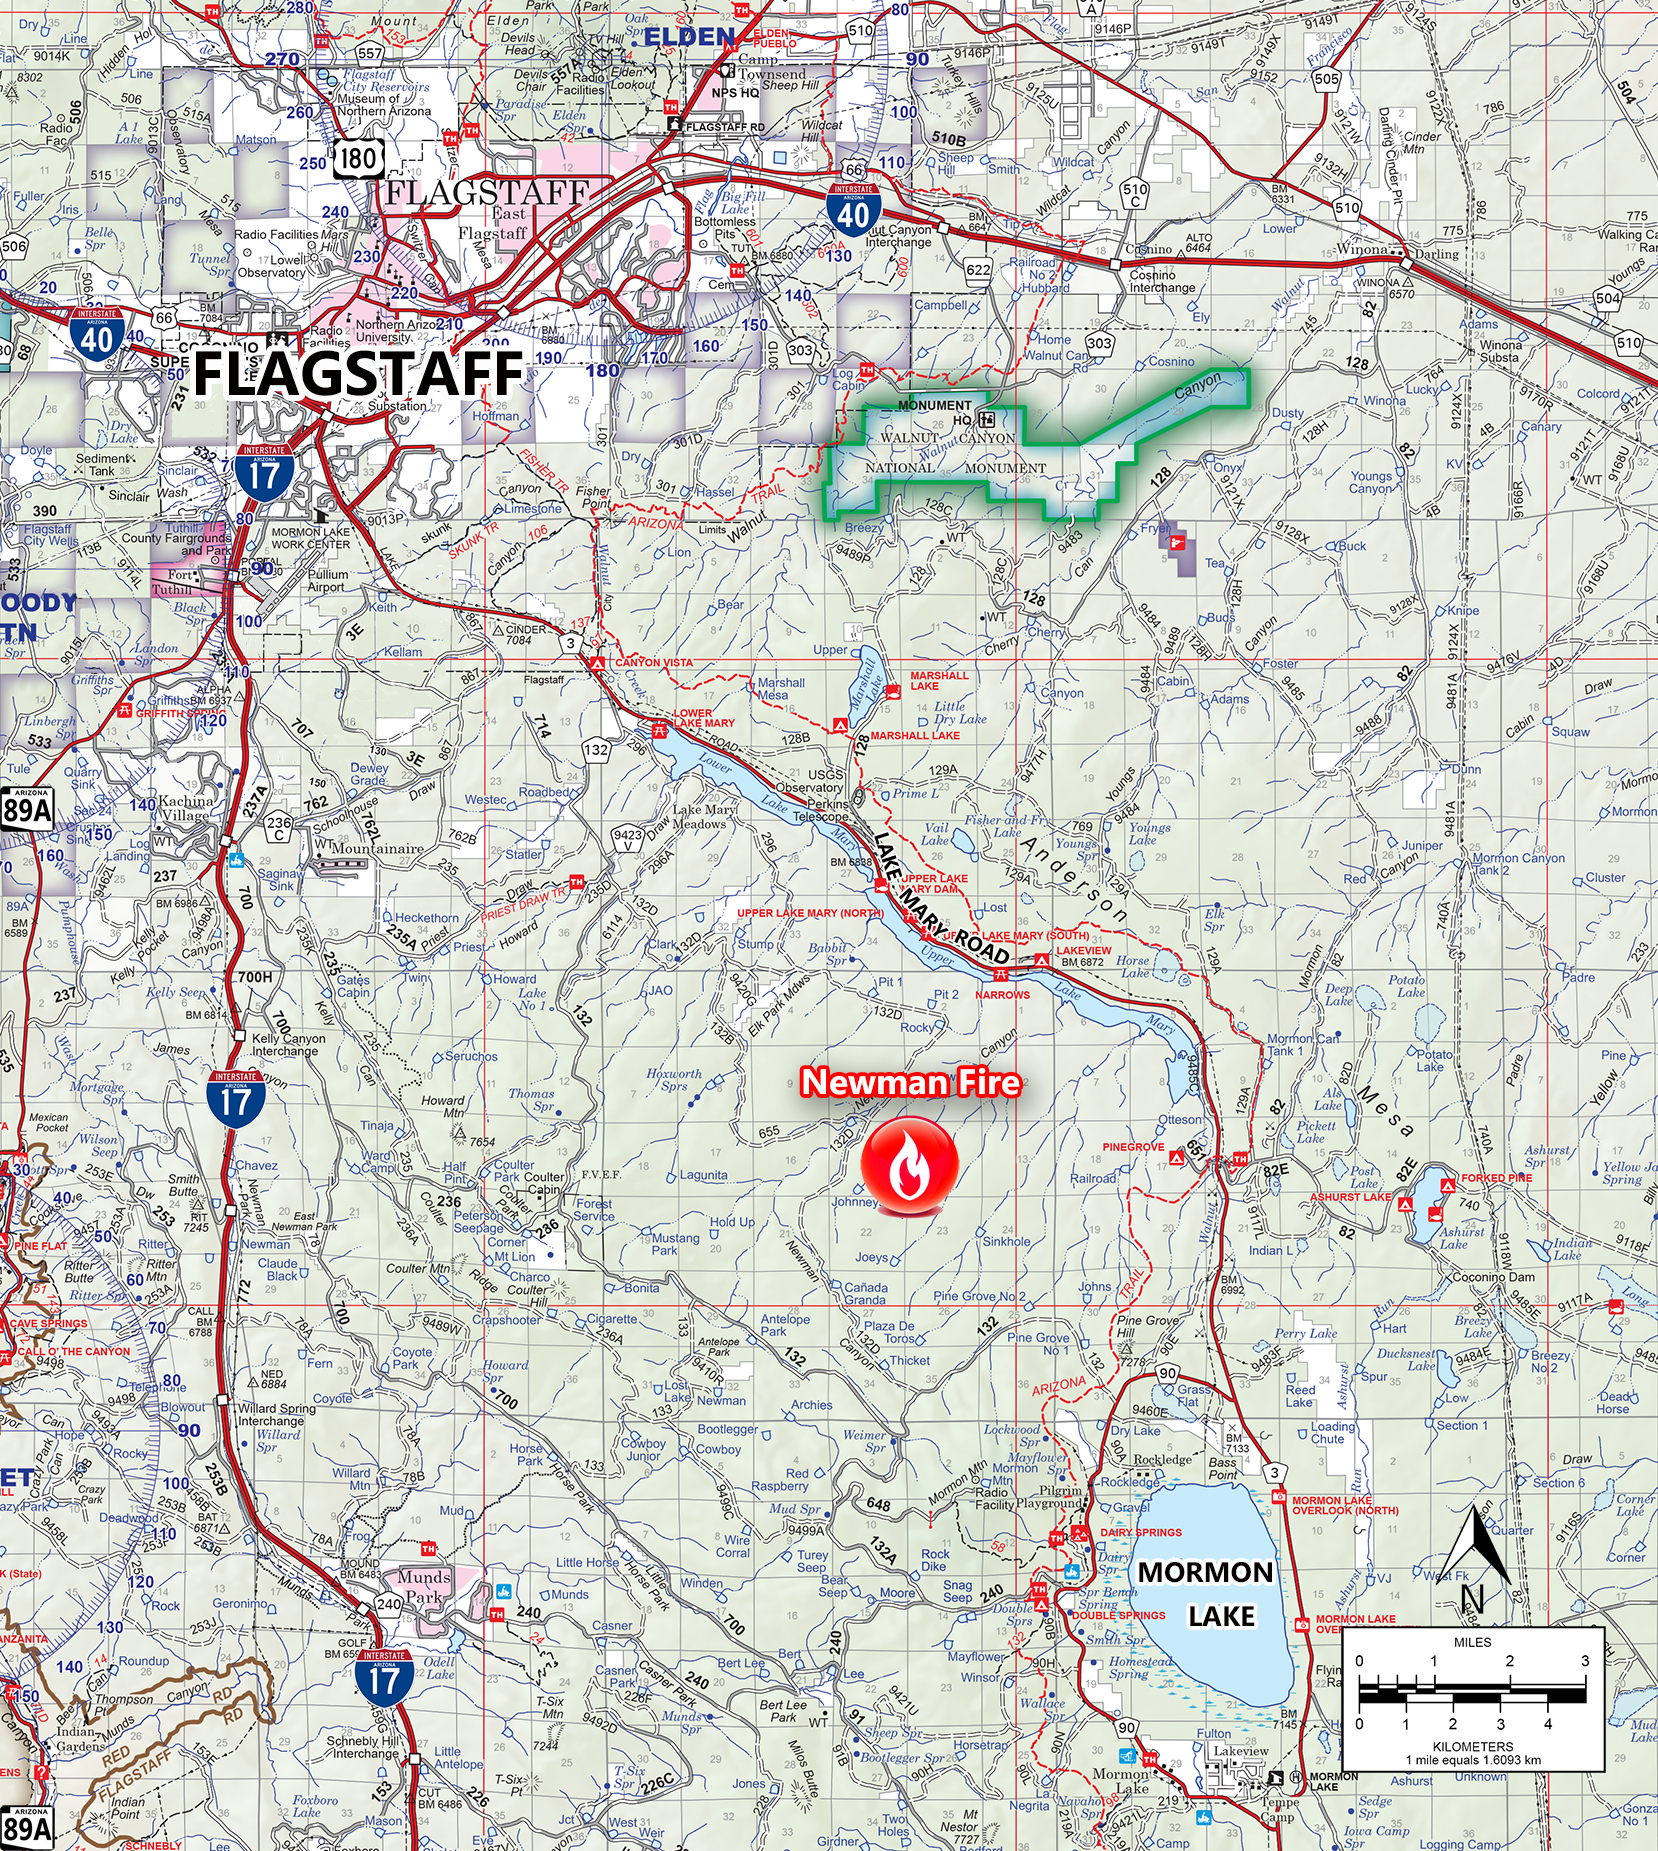 The image shows a map of the Flagstaff, Arizona area. A red fire icon is shows where the Newman Fire is located.